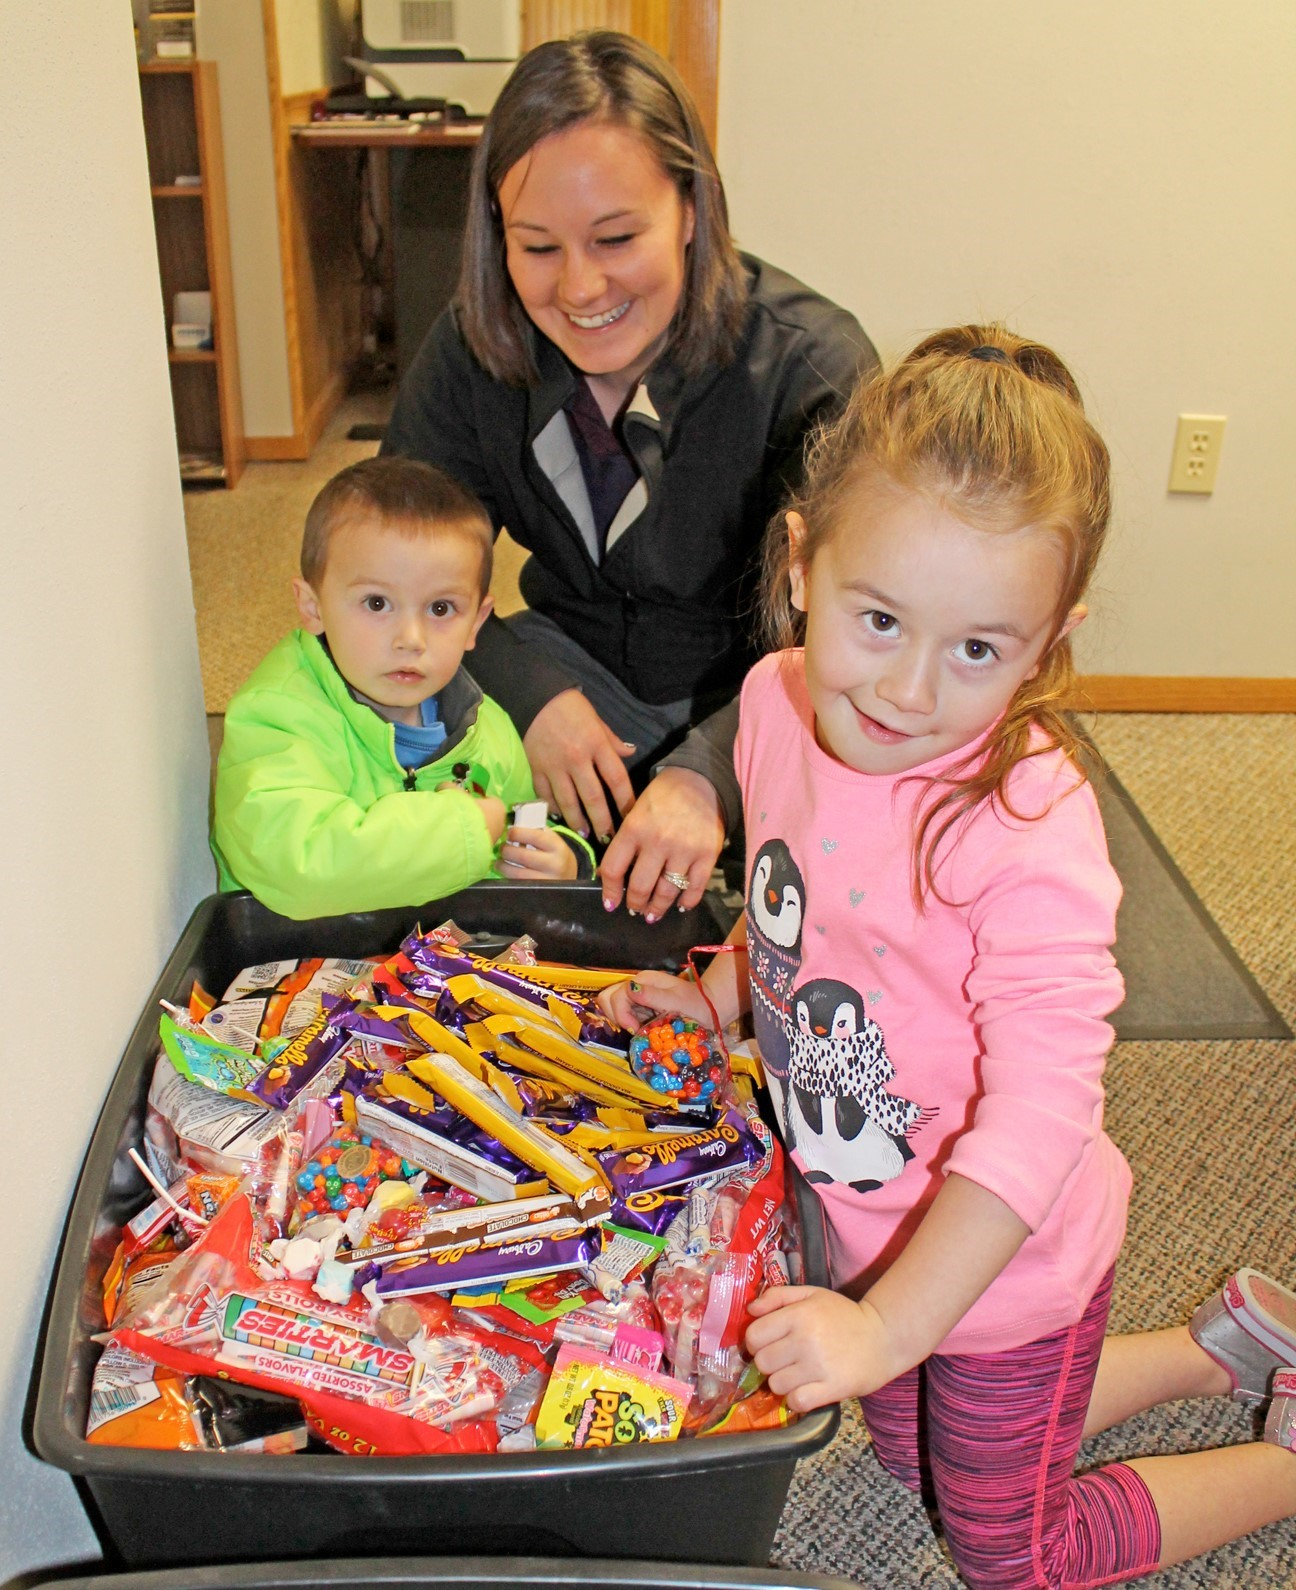 Smiling woman with two small children hovering over a plastic bin of Halloween candy